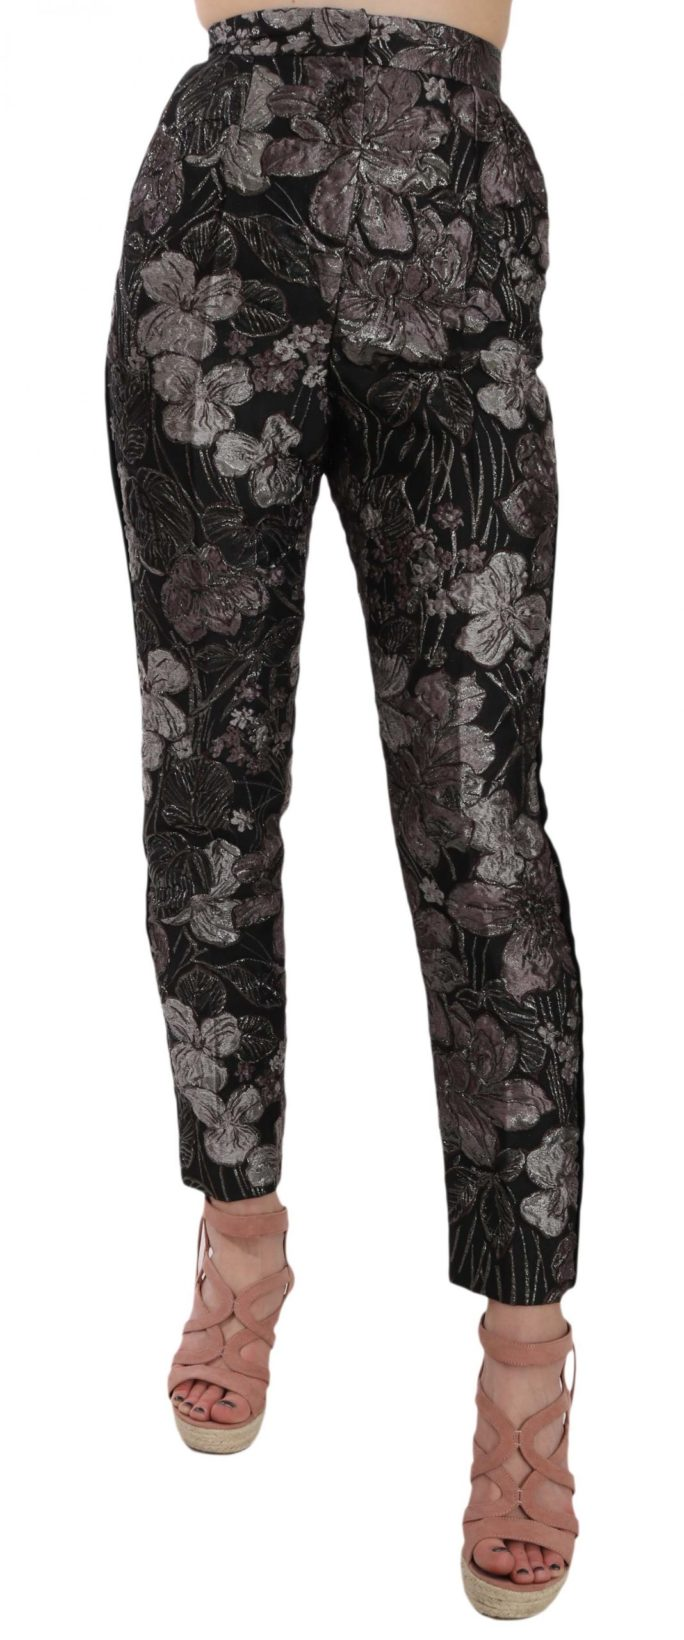 658486 Gray Floral Brocade High Waist Tapered Pants.jpg